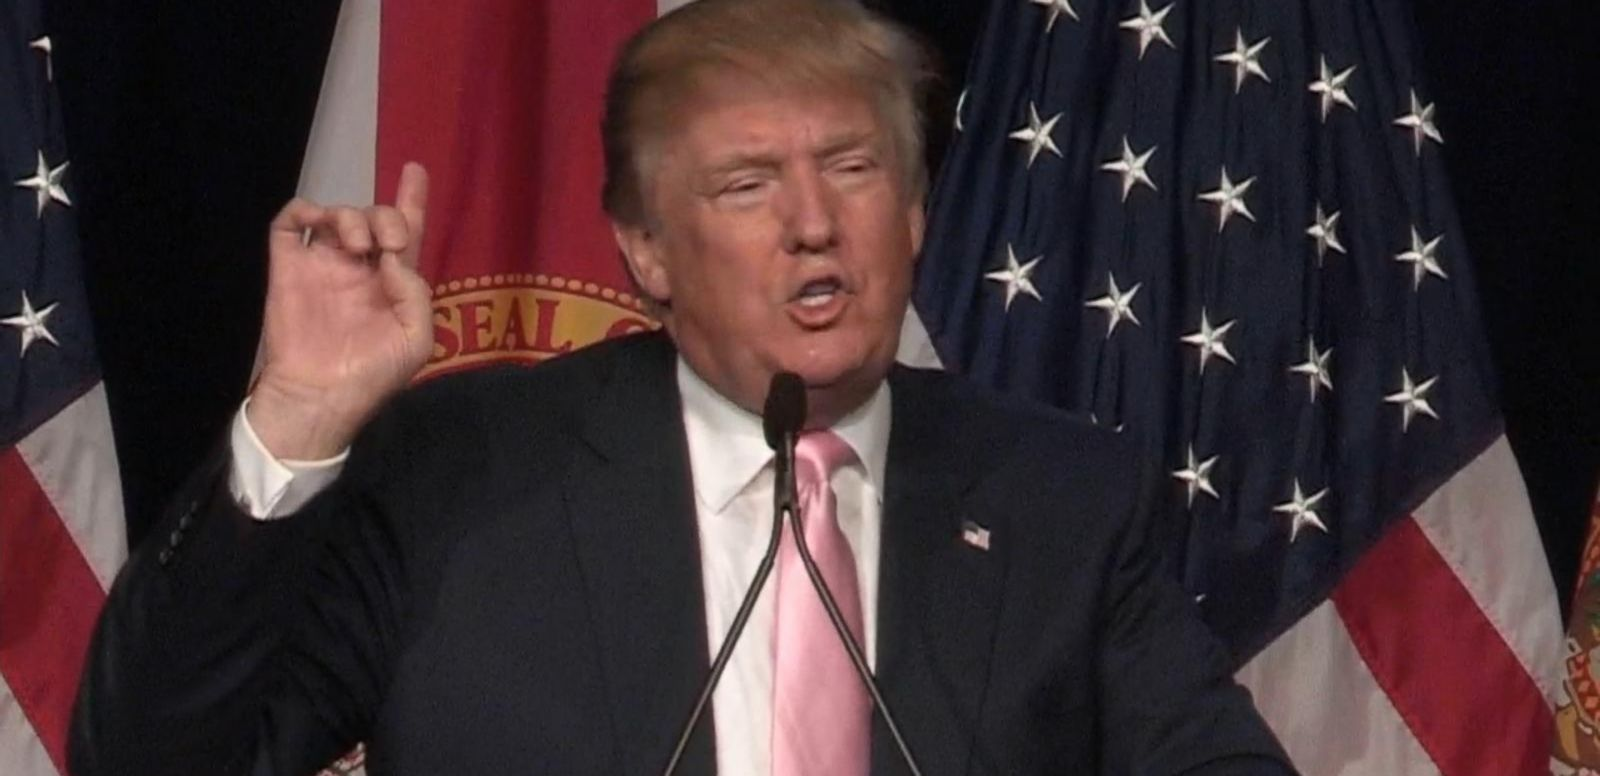 VIDEO: Trump Slams Carson as Super Low Energy